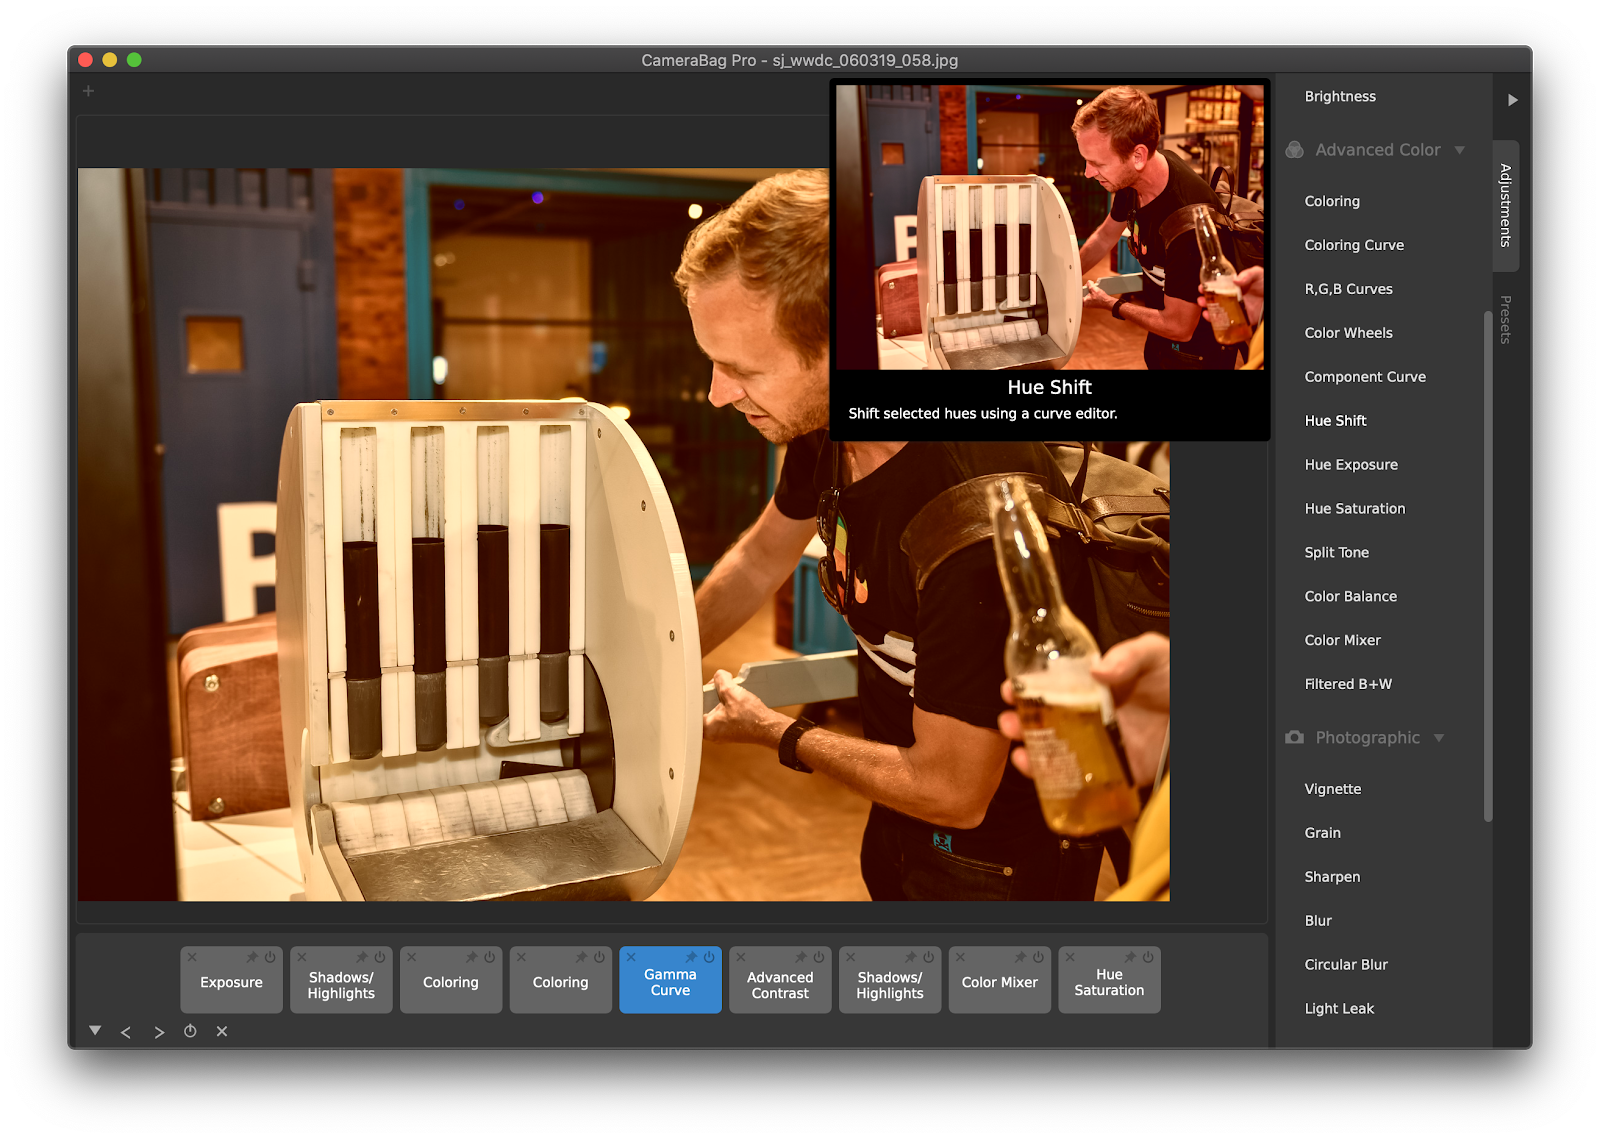 CameraBag Pro, a photo and video editing app for Mac